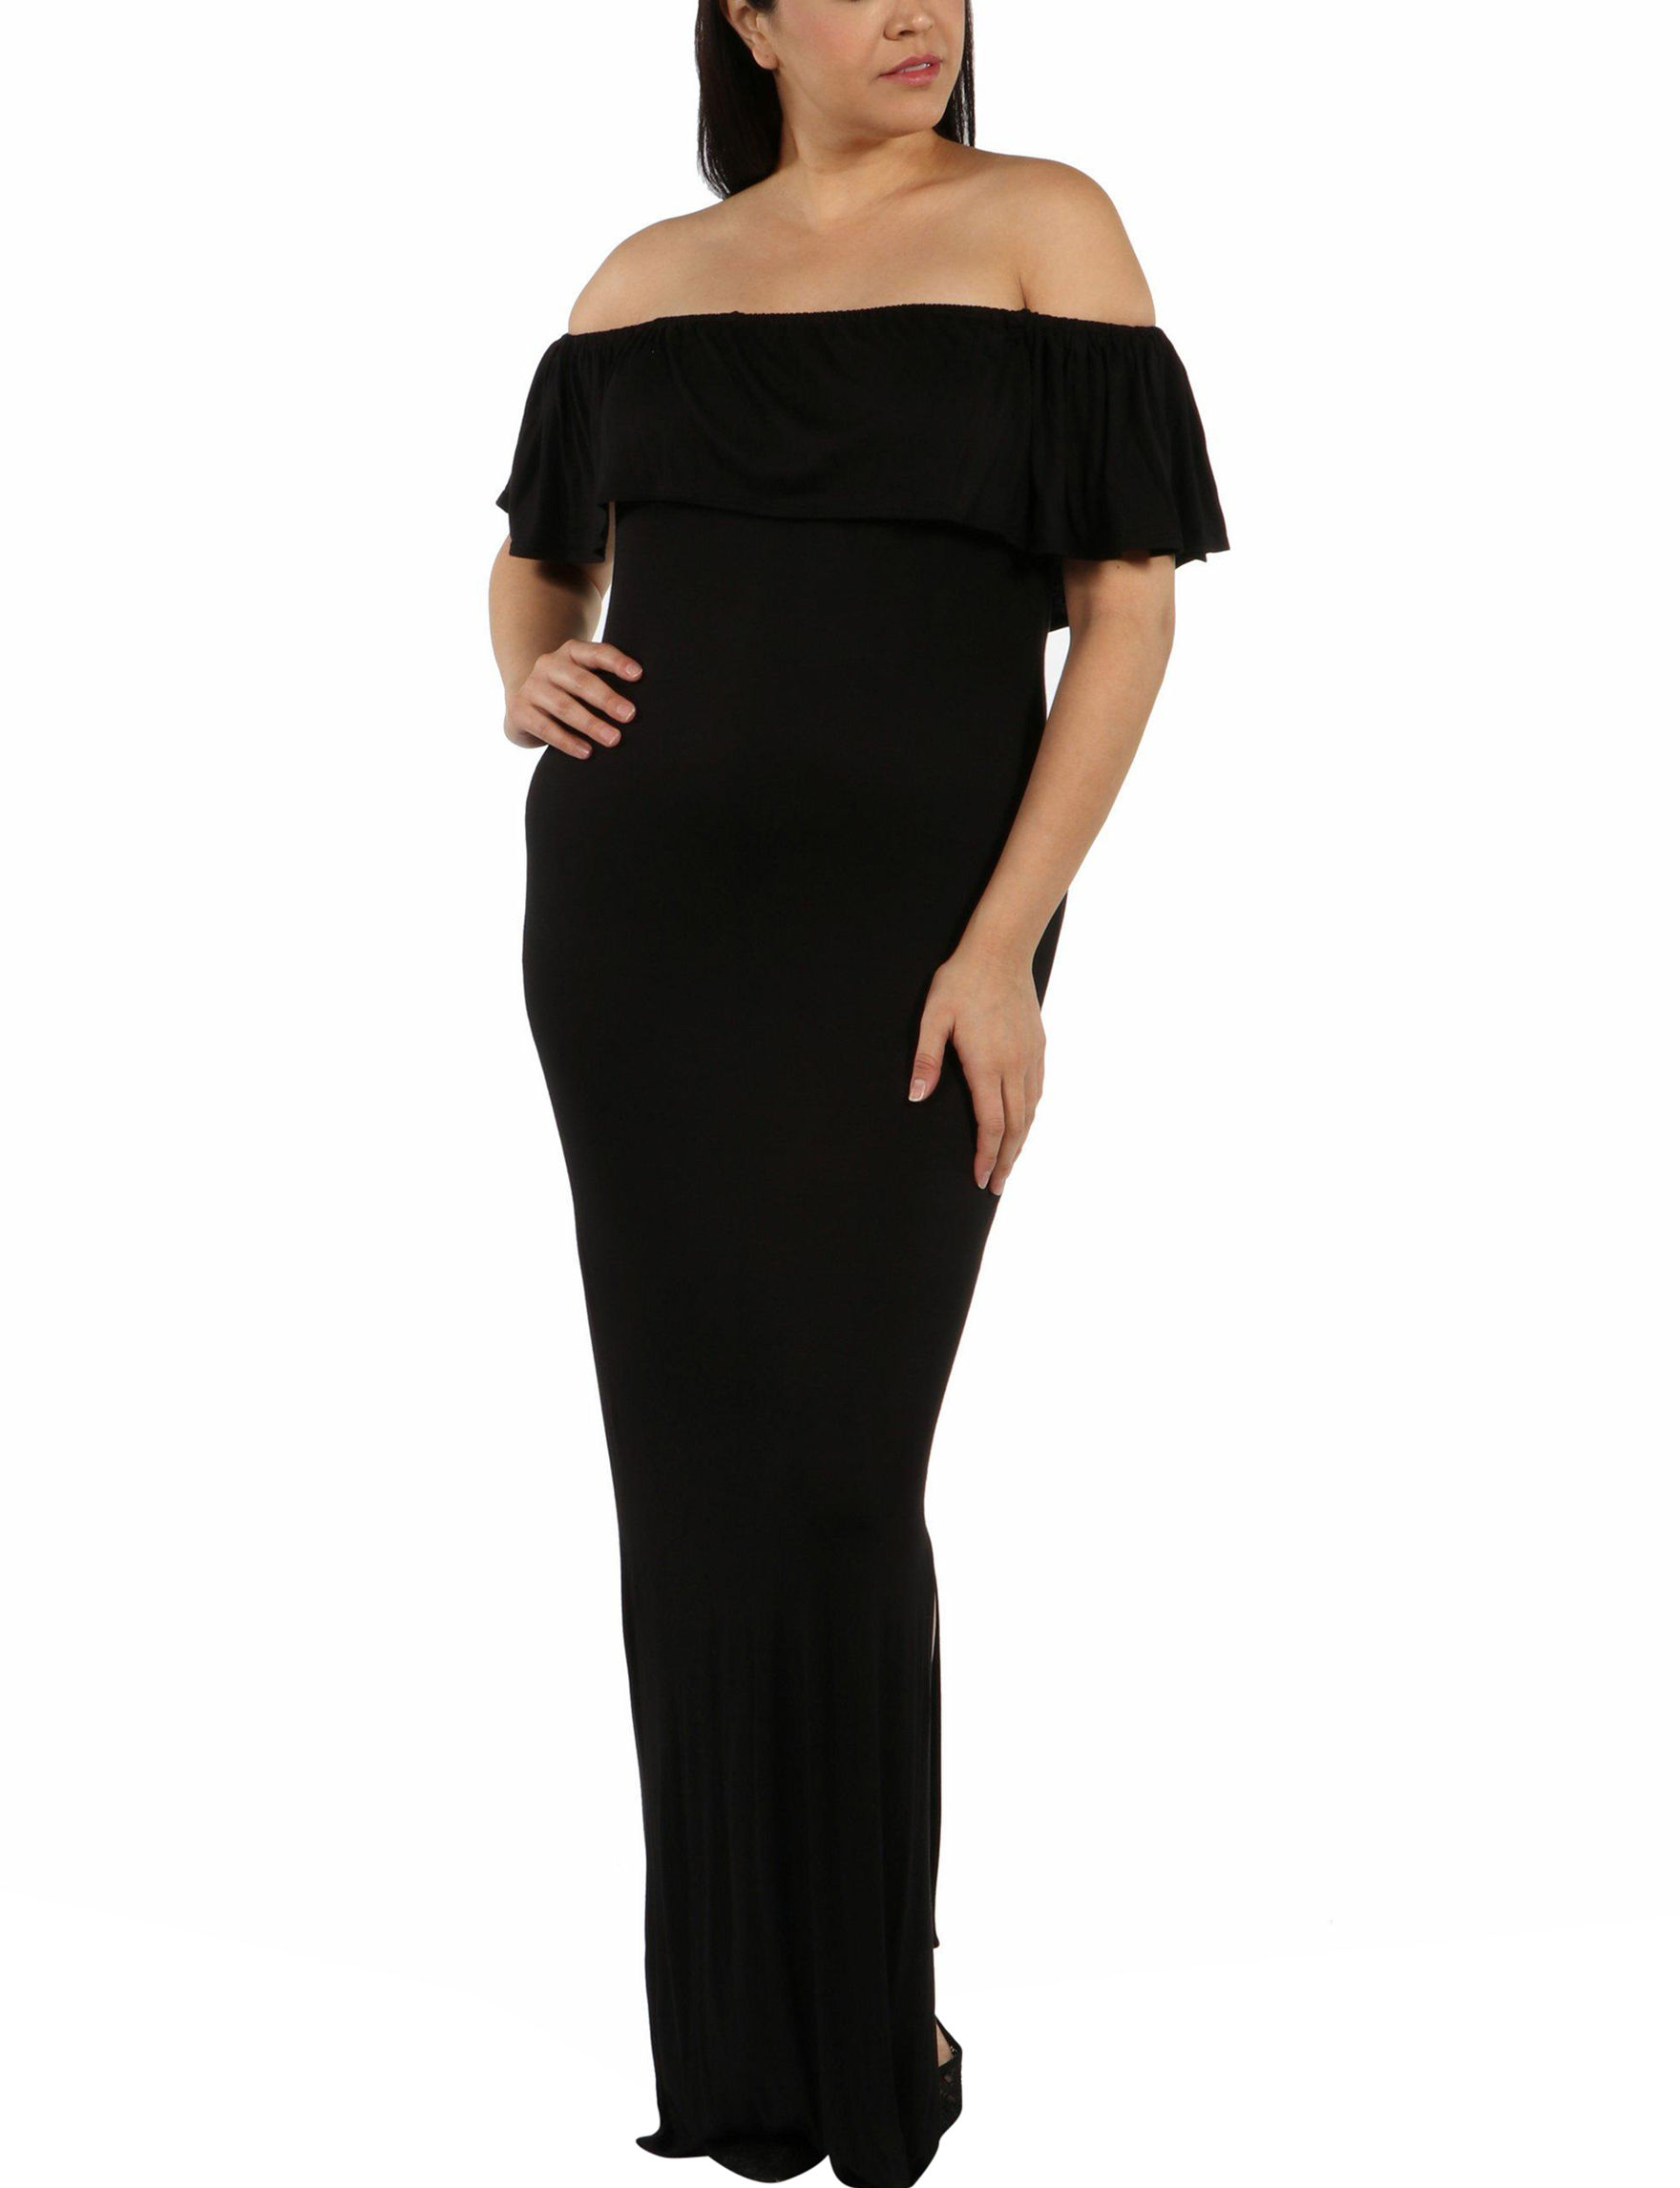 24Seven Comfort Apparel Black Cocktail & Party Everyday & Casual Sundresses